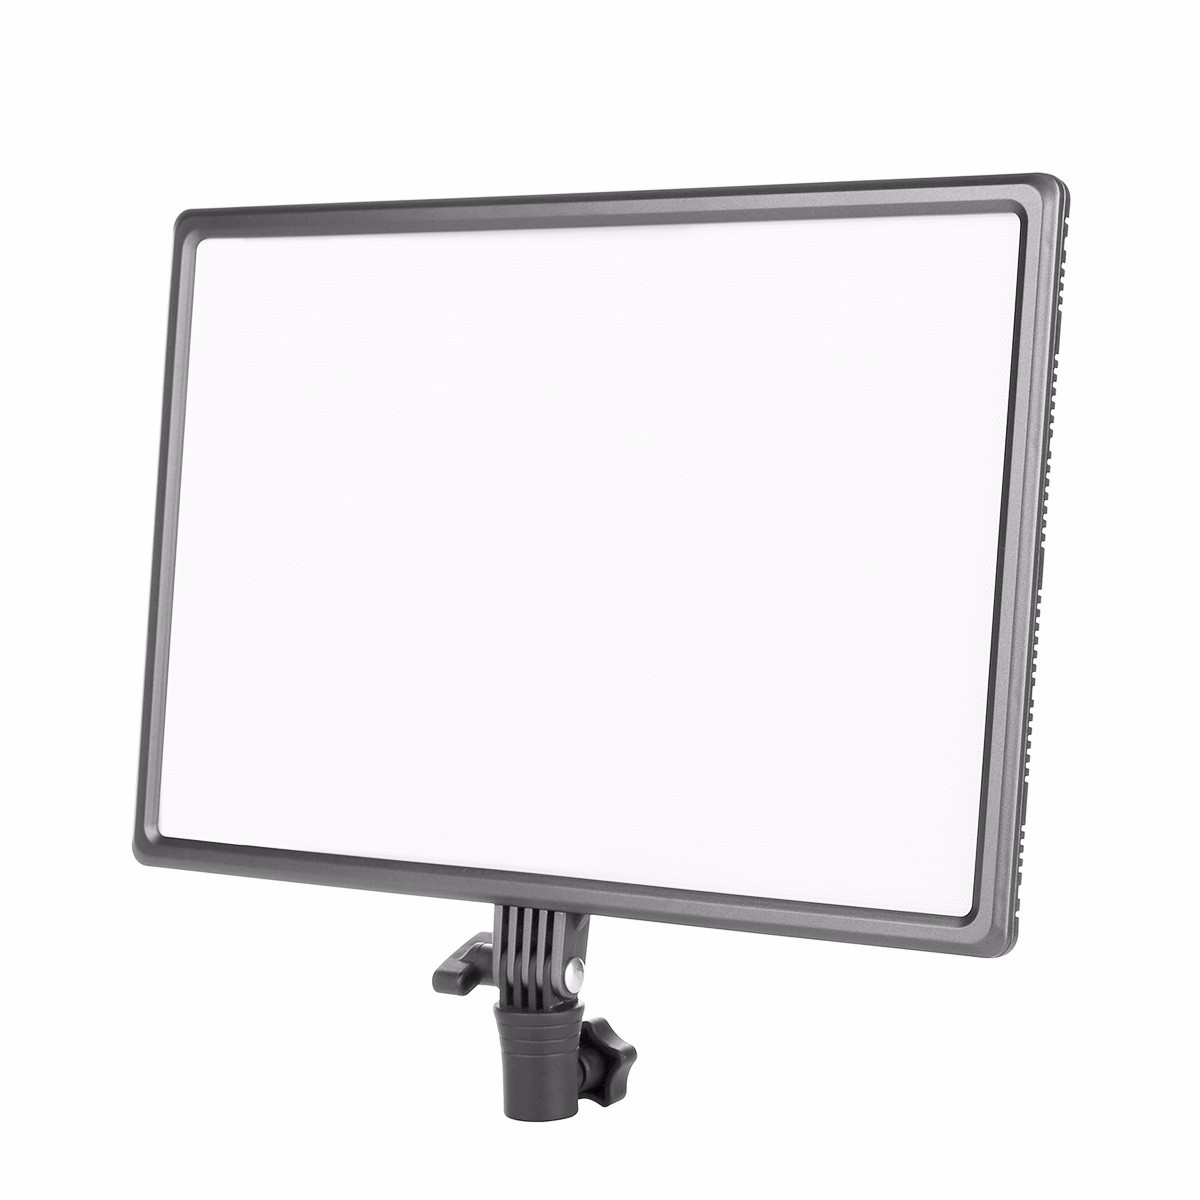 Nanguang CN-Luxpad43 Dimmable 3200K-5600K LED Led video light for Canon Panasonic Sony Samsung and Olympus DSLR Cameras